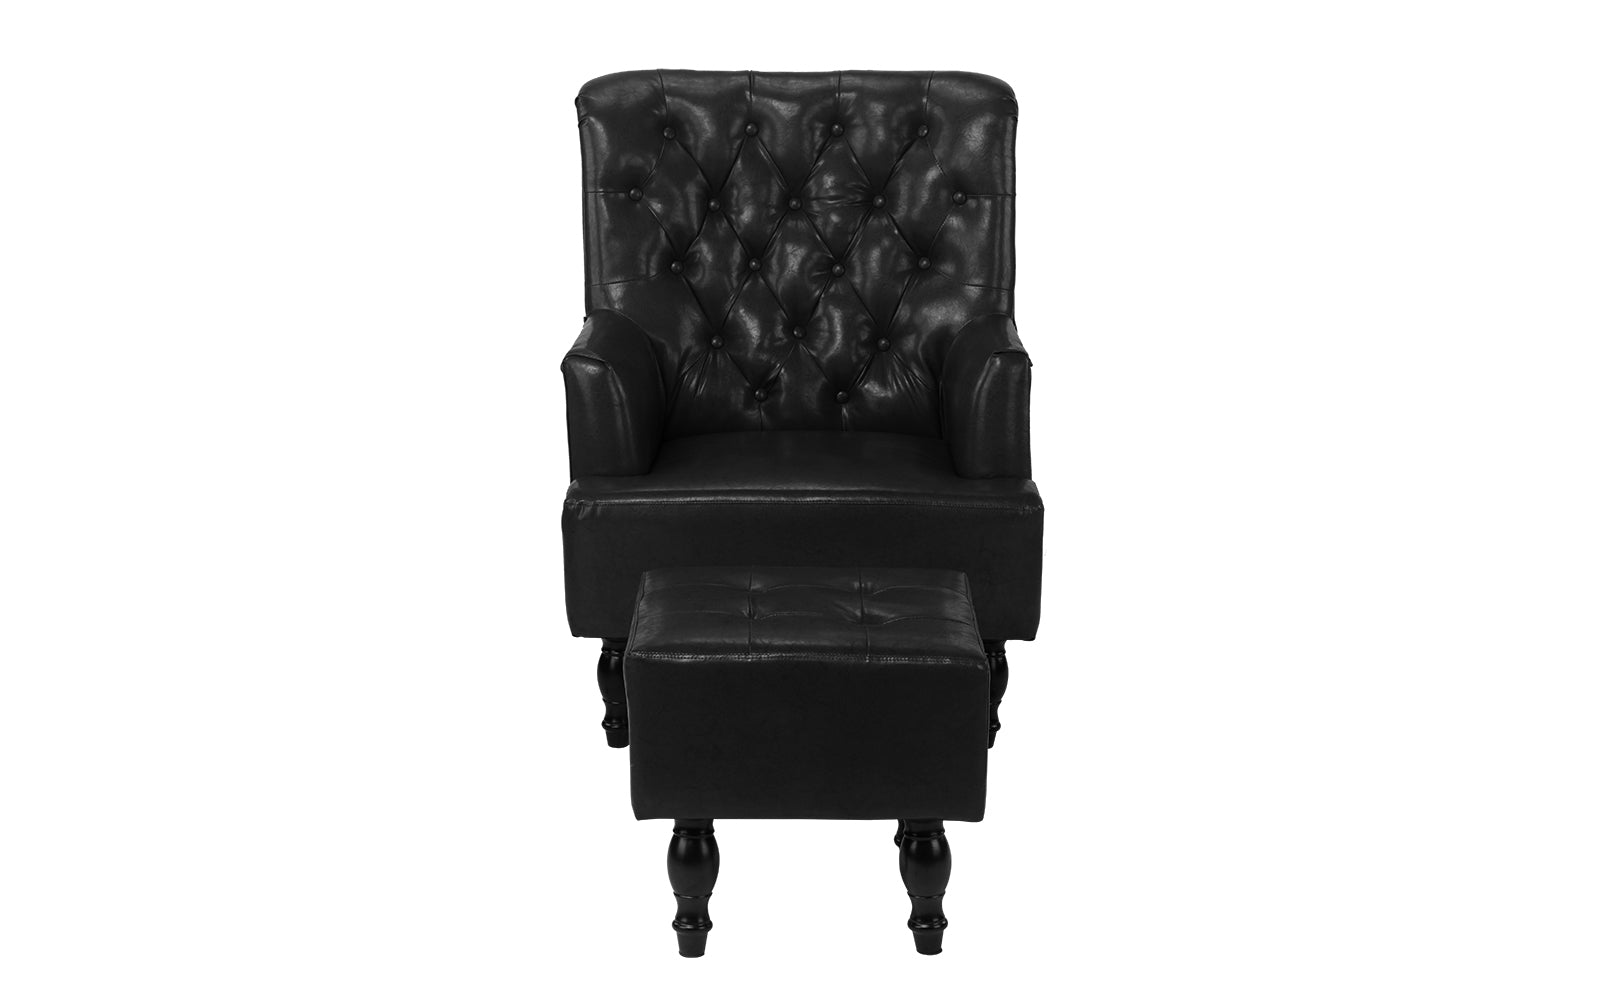 Vela Tufted Victorian Faux Leather Armchair And Ottoman Set